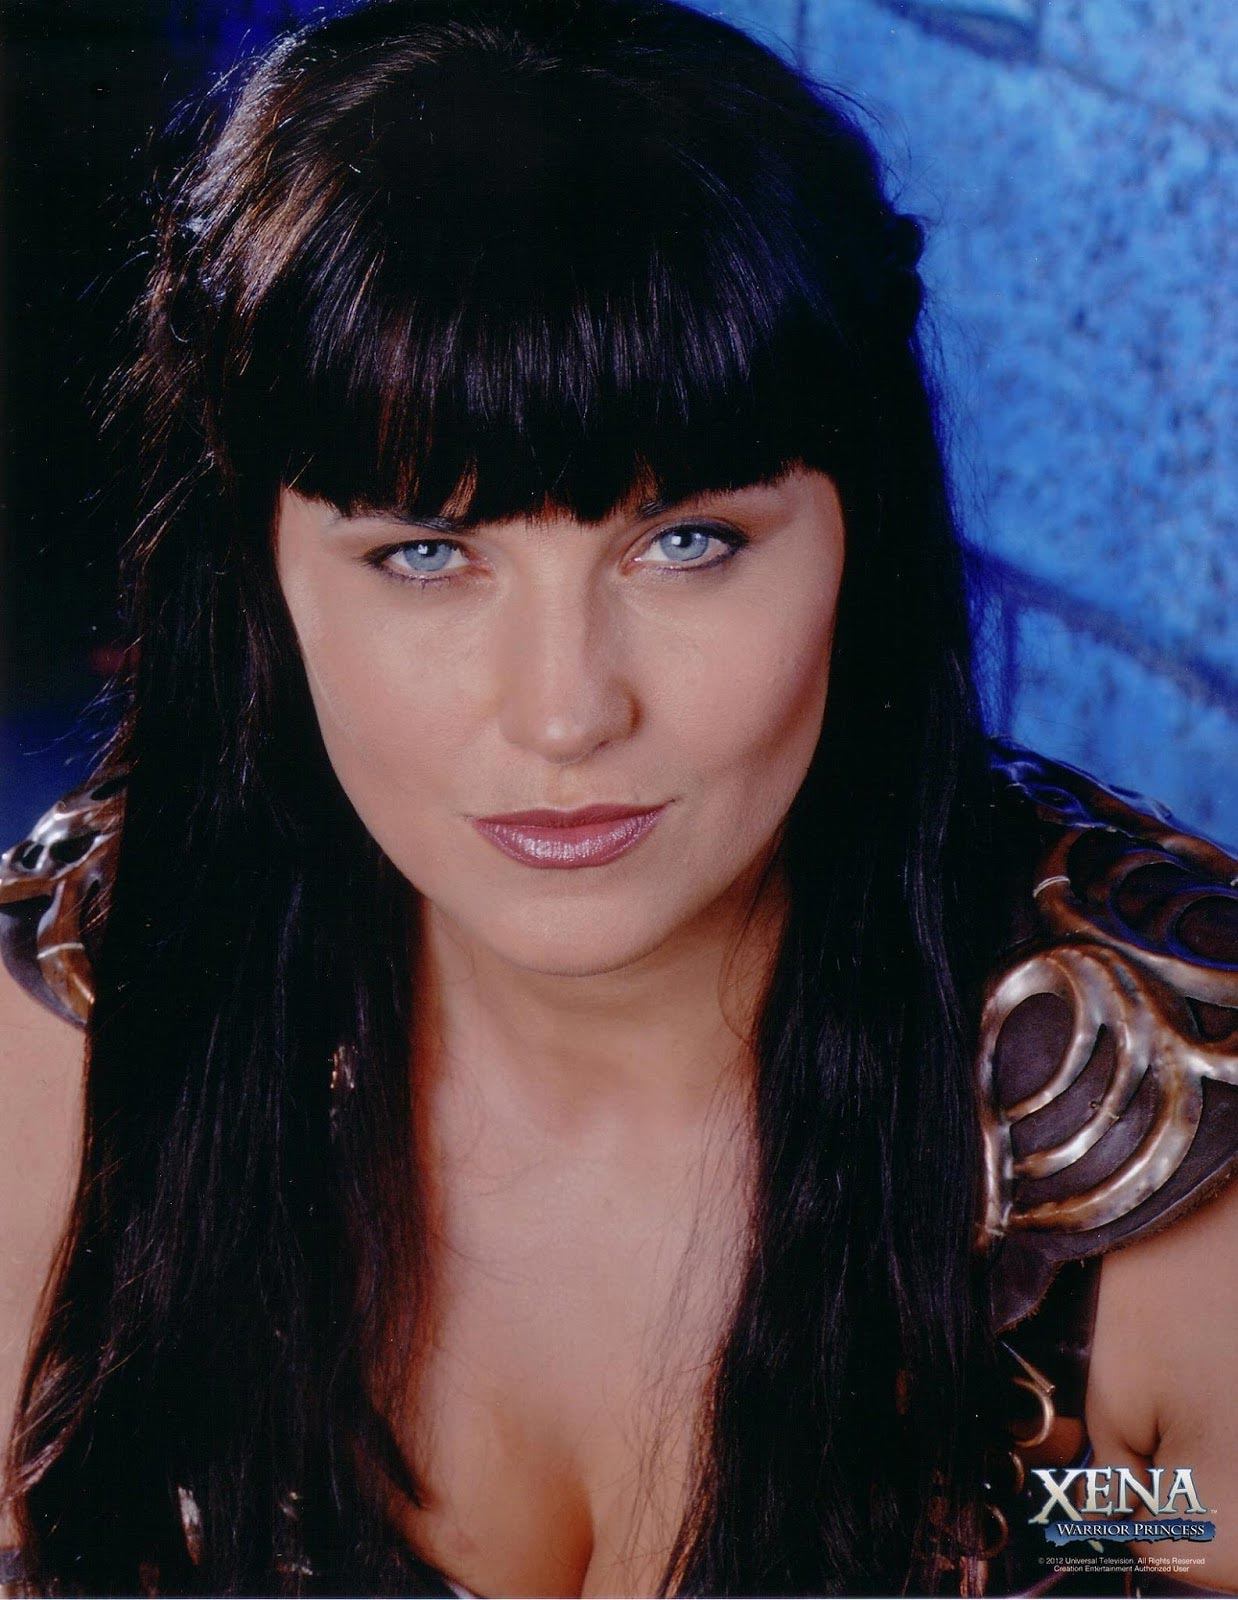 Lucy Lawless - Scream queen